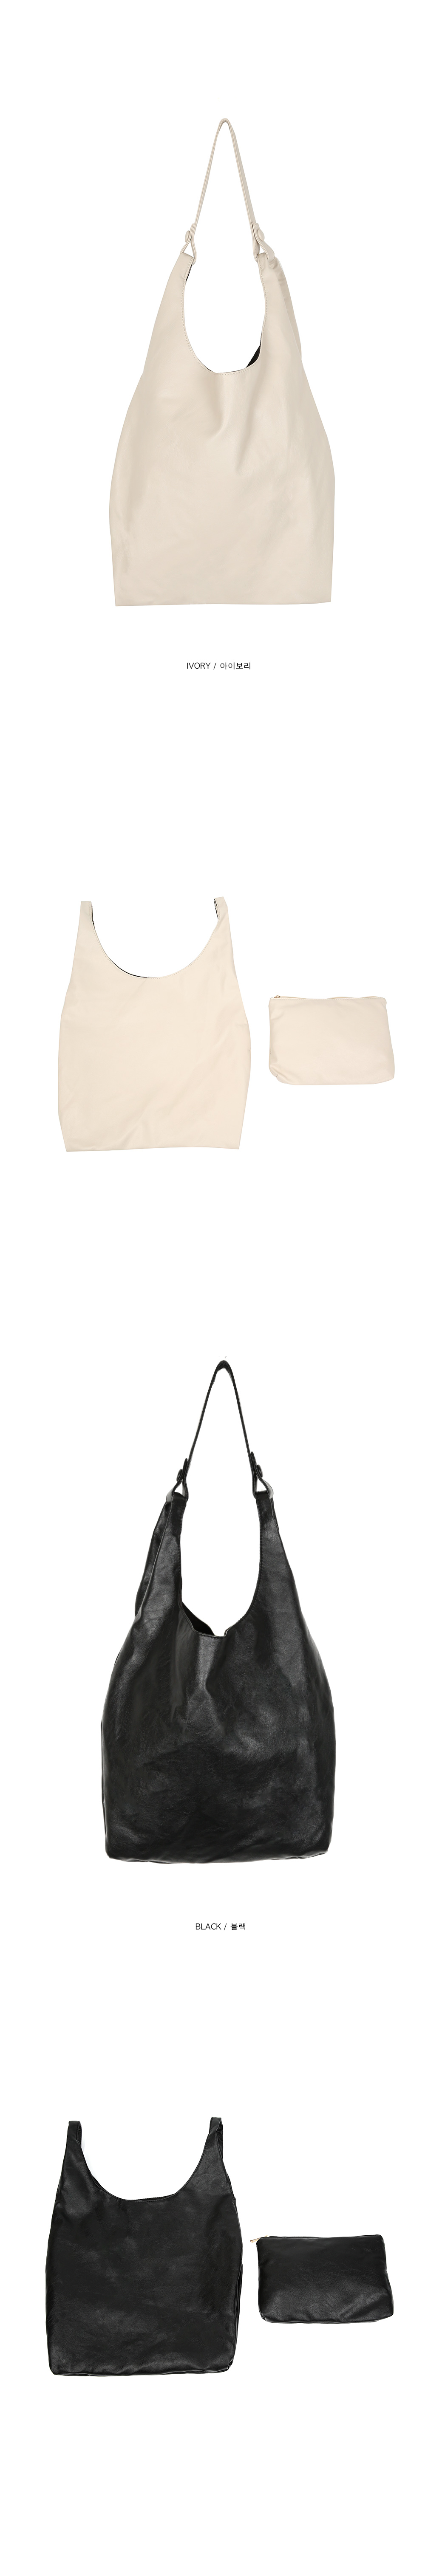 pouch set leather tote bag